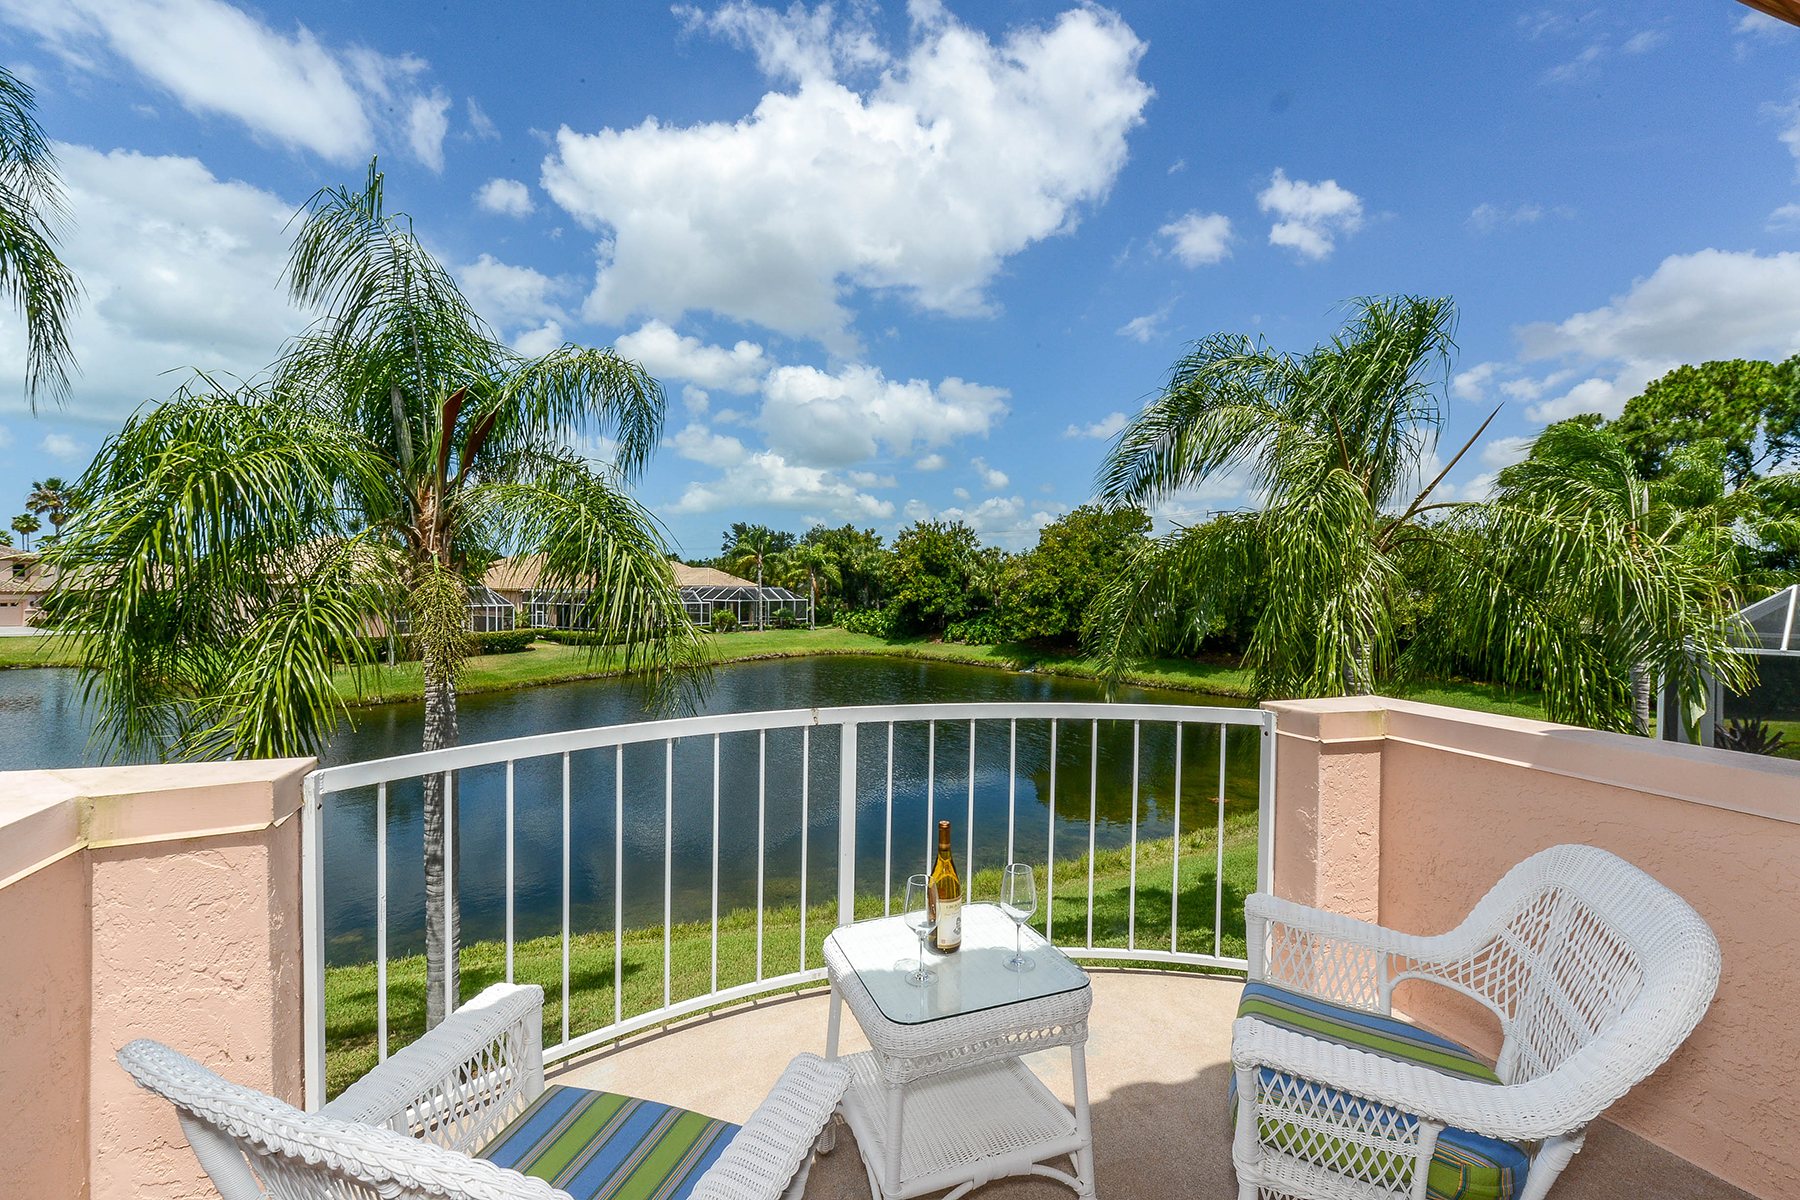 Other Residential for Sale at MIRA LAGO 4177 Entrada Ct, Sarasota, Florida, 34238 United States